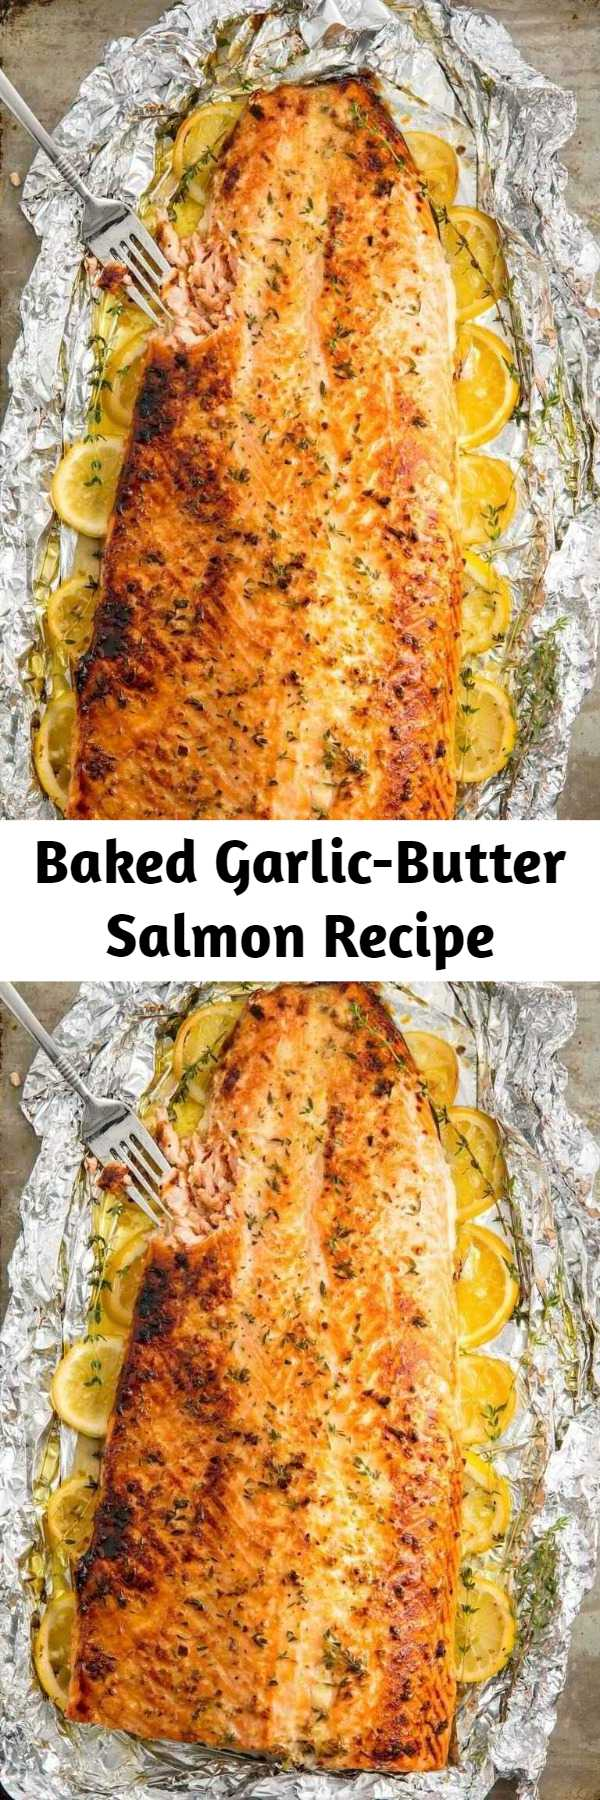 Baked Garlic-Butter Salmon Recipe - This healthy baked salmon is the best way to feed a crowd. There's no skillet cooking at all—everything is oven-baked in foil, making prep and cleanup a breeze. Considering how beautiful, easy, and dang delicious this hunk of fish is, we believe it might just be the best baked salmon recipe IN THE WORLD. This is the only baked salmon recipe you'll ever need. #fish #fishrecipes #salmon #salmonrecipes #easyrecipes #healthyrecipes